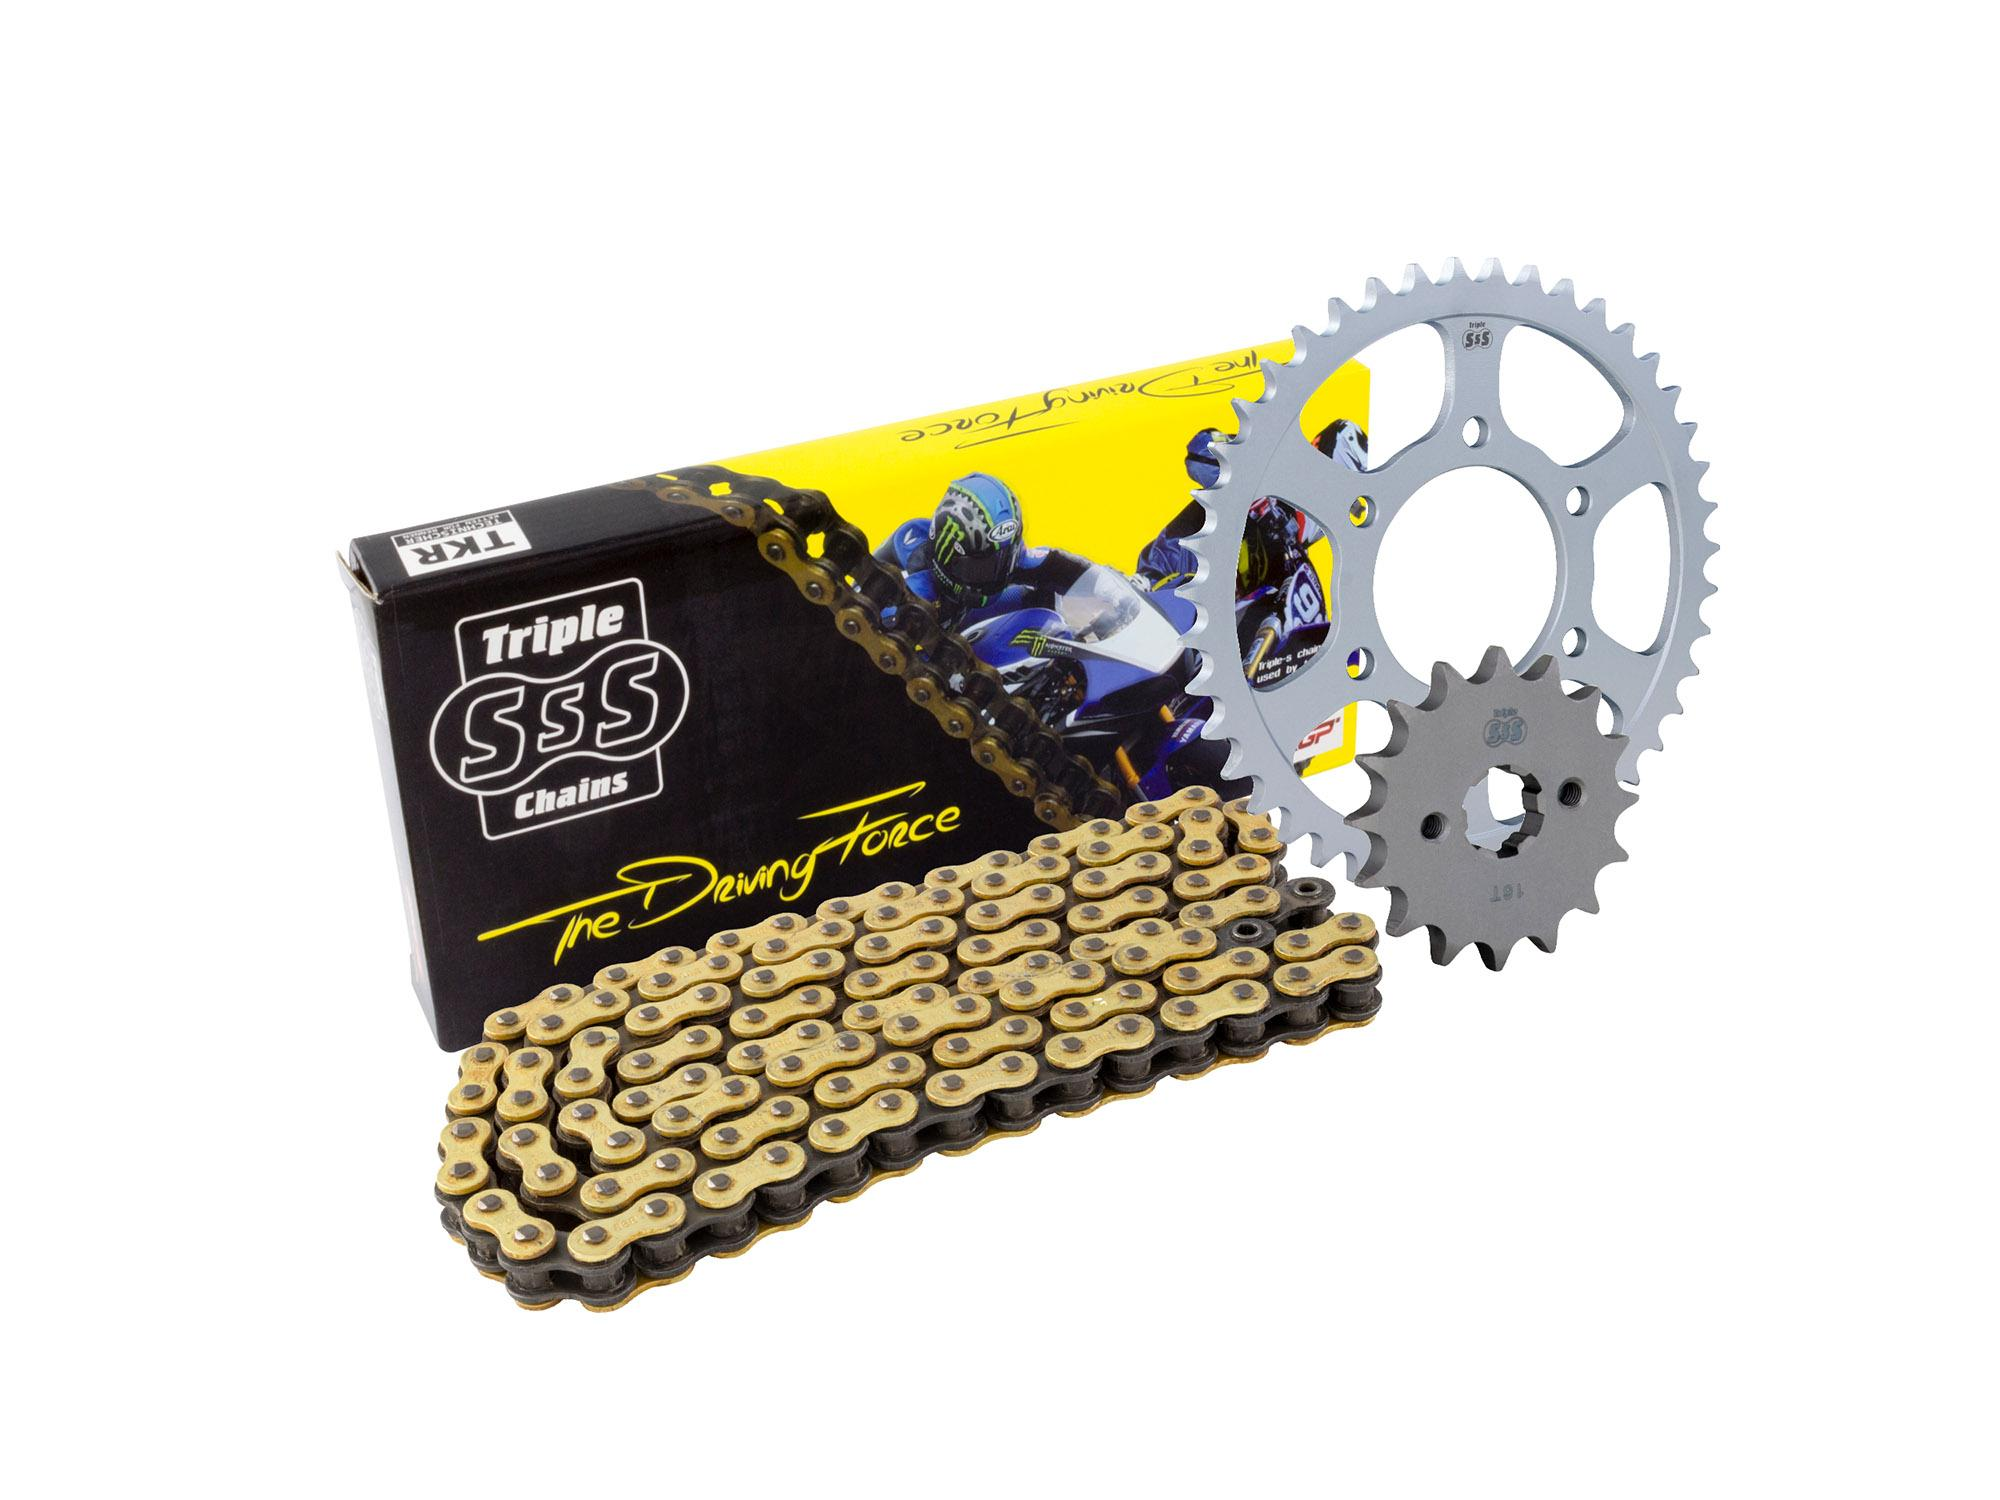 Honda CRF1000L 15> Chain & Sprocket Kit: 16T Front, 42T Rear, HD O-Ring Gold Chain 525H 124Link